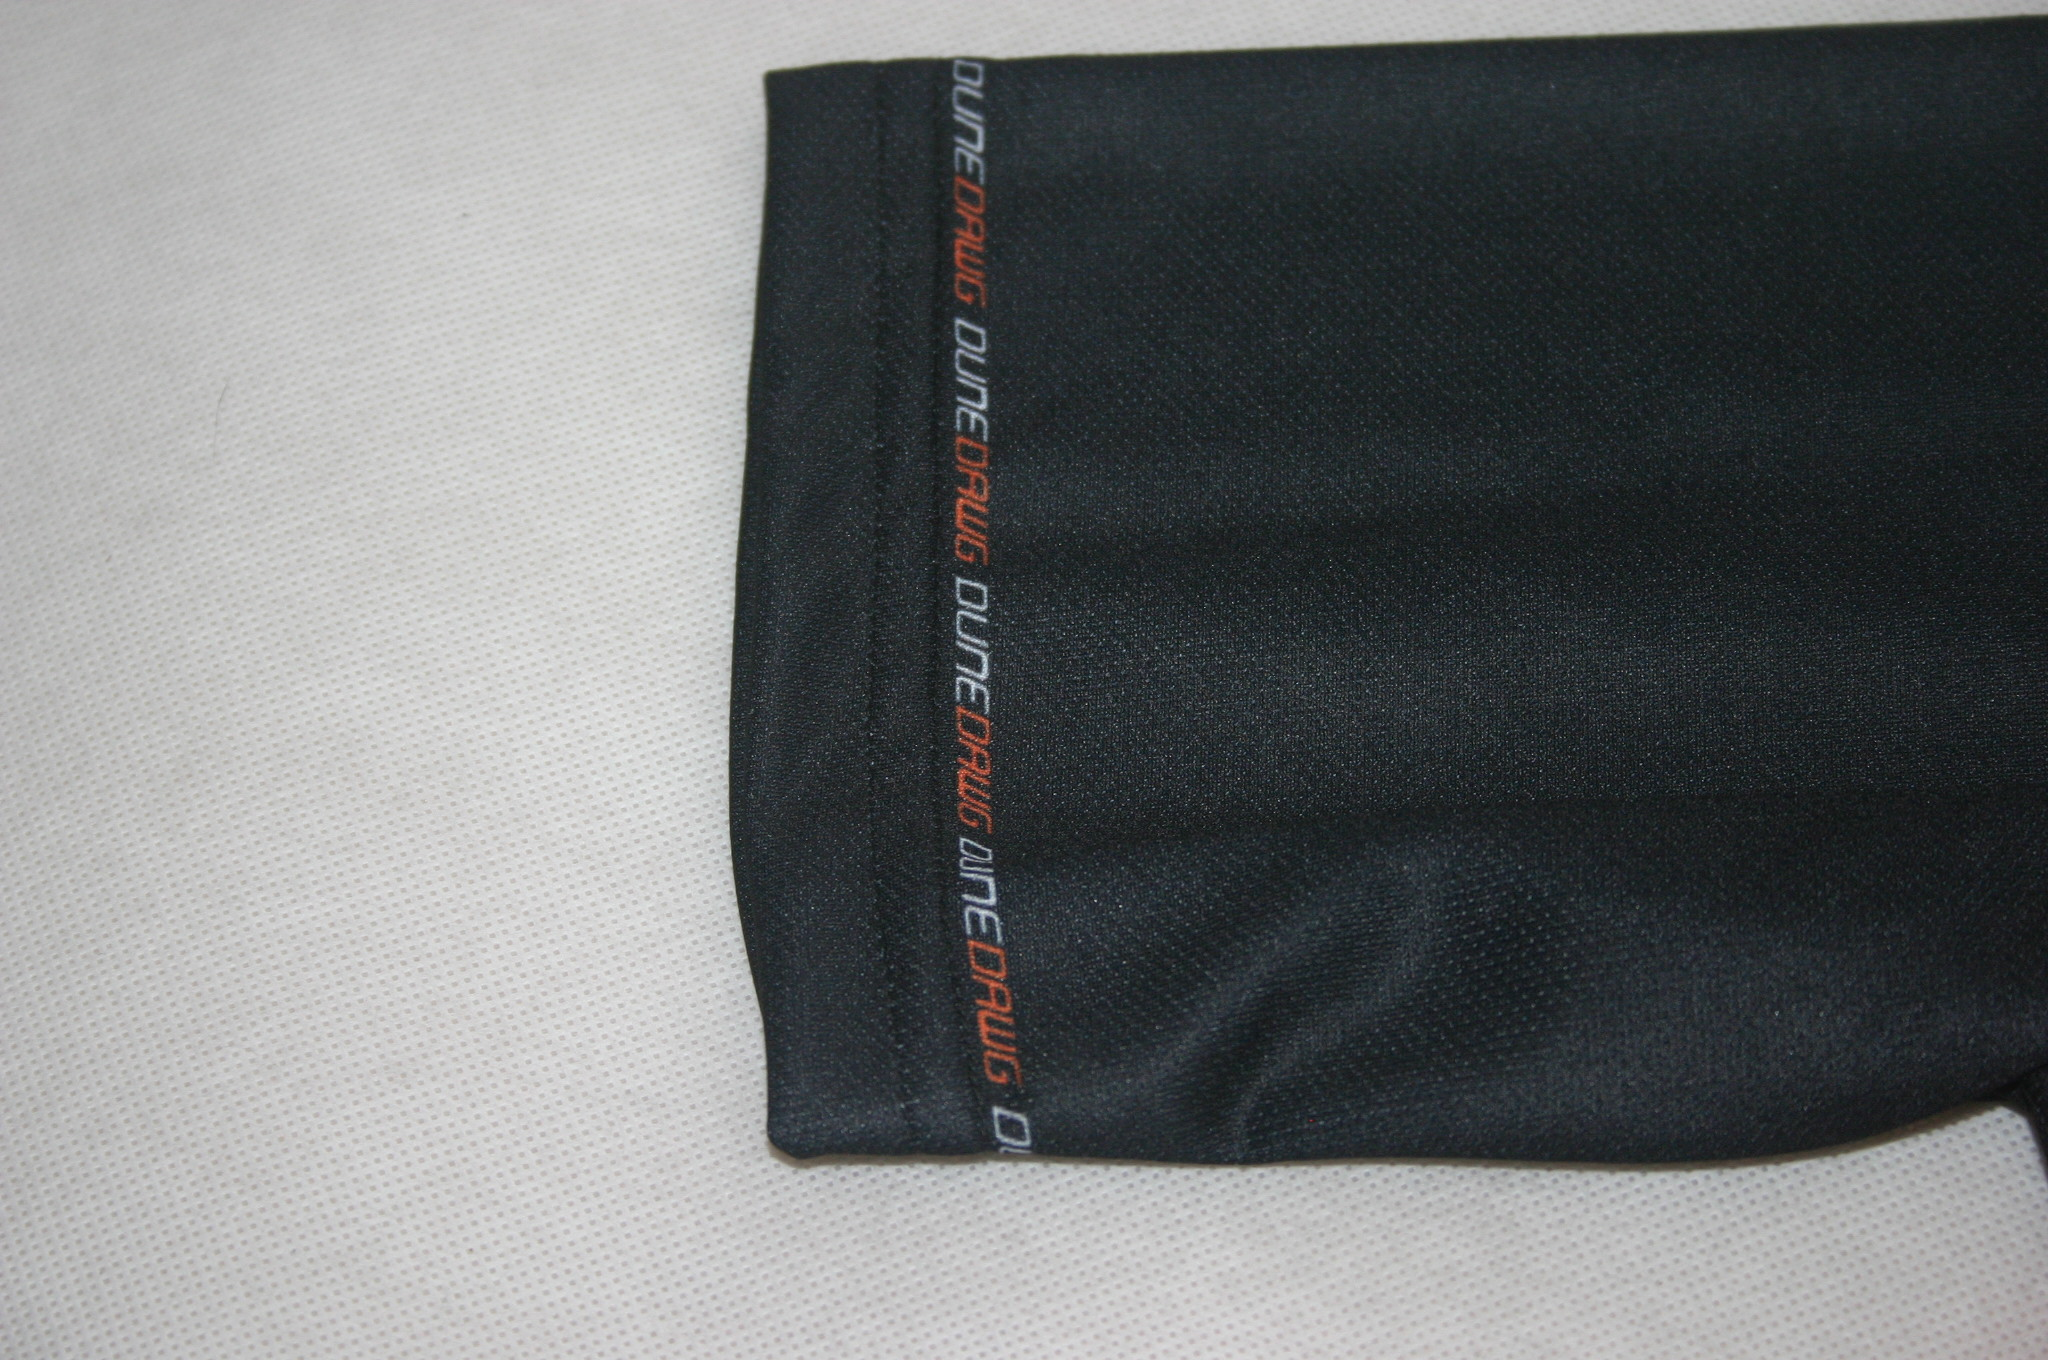 Custom Running Shirts double stitched hem arm openings